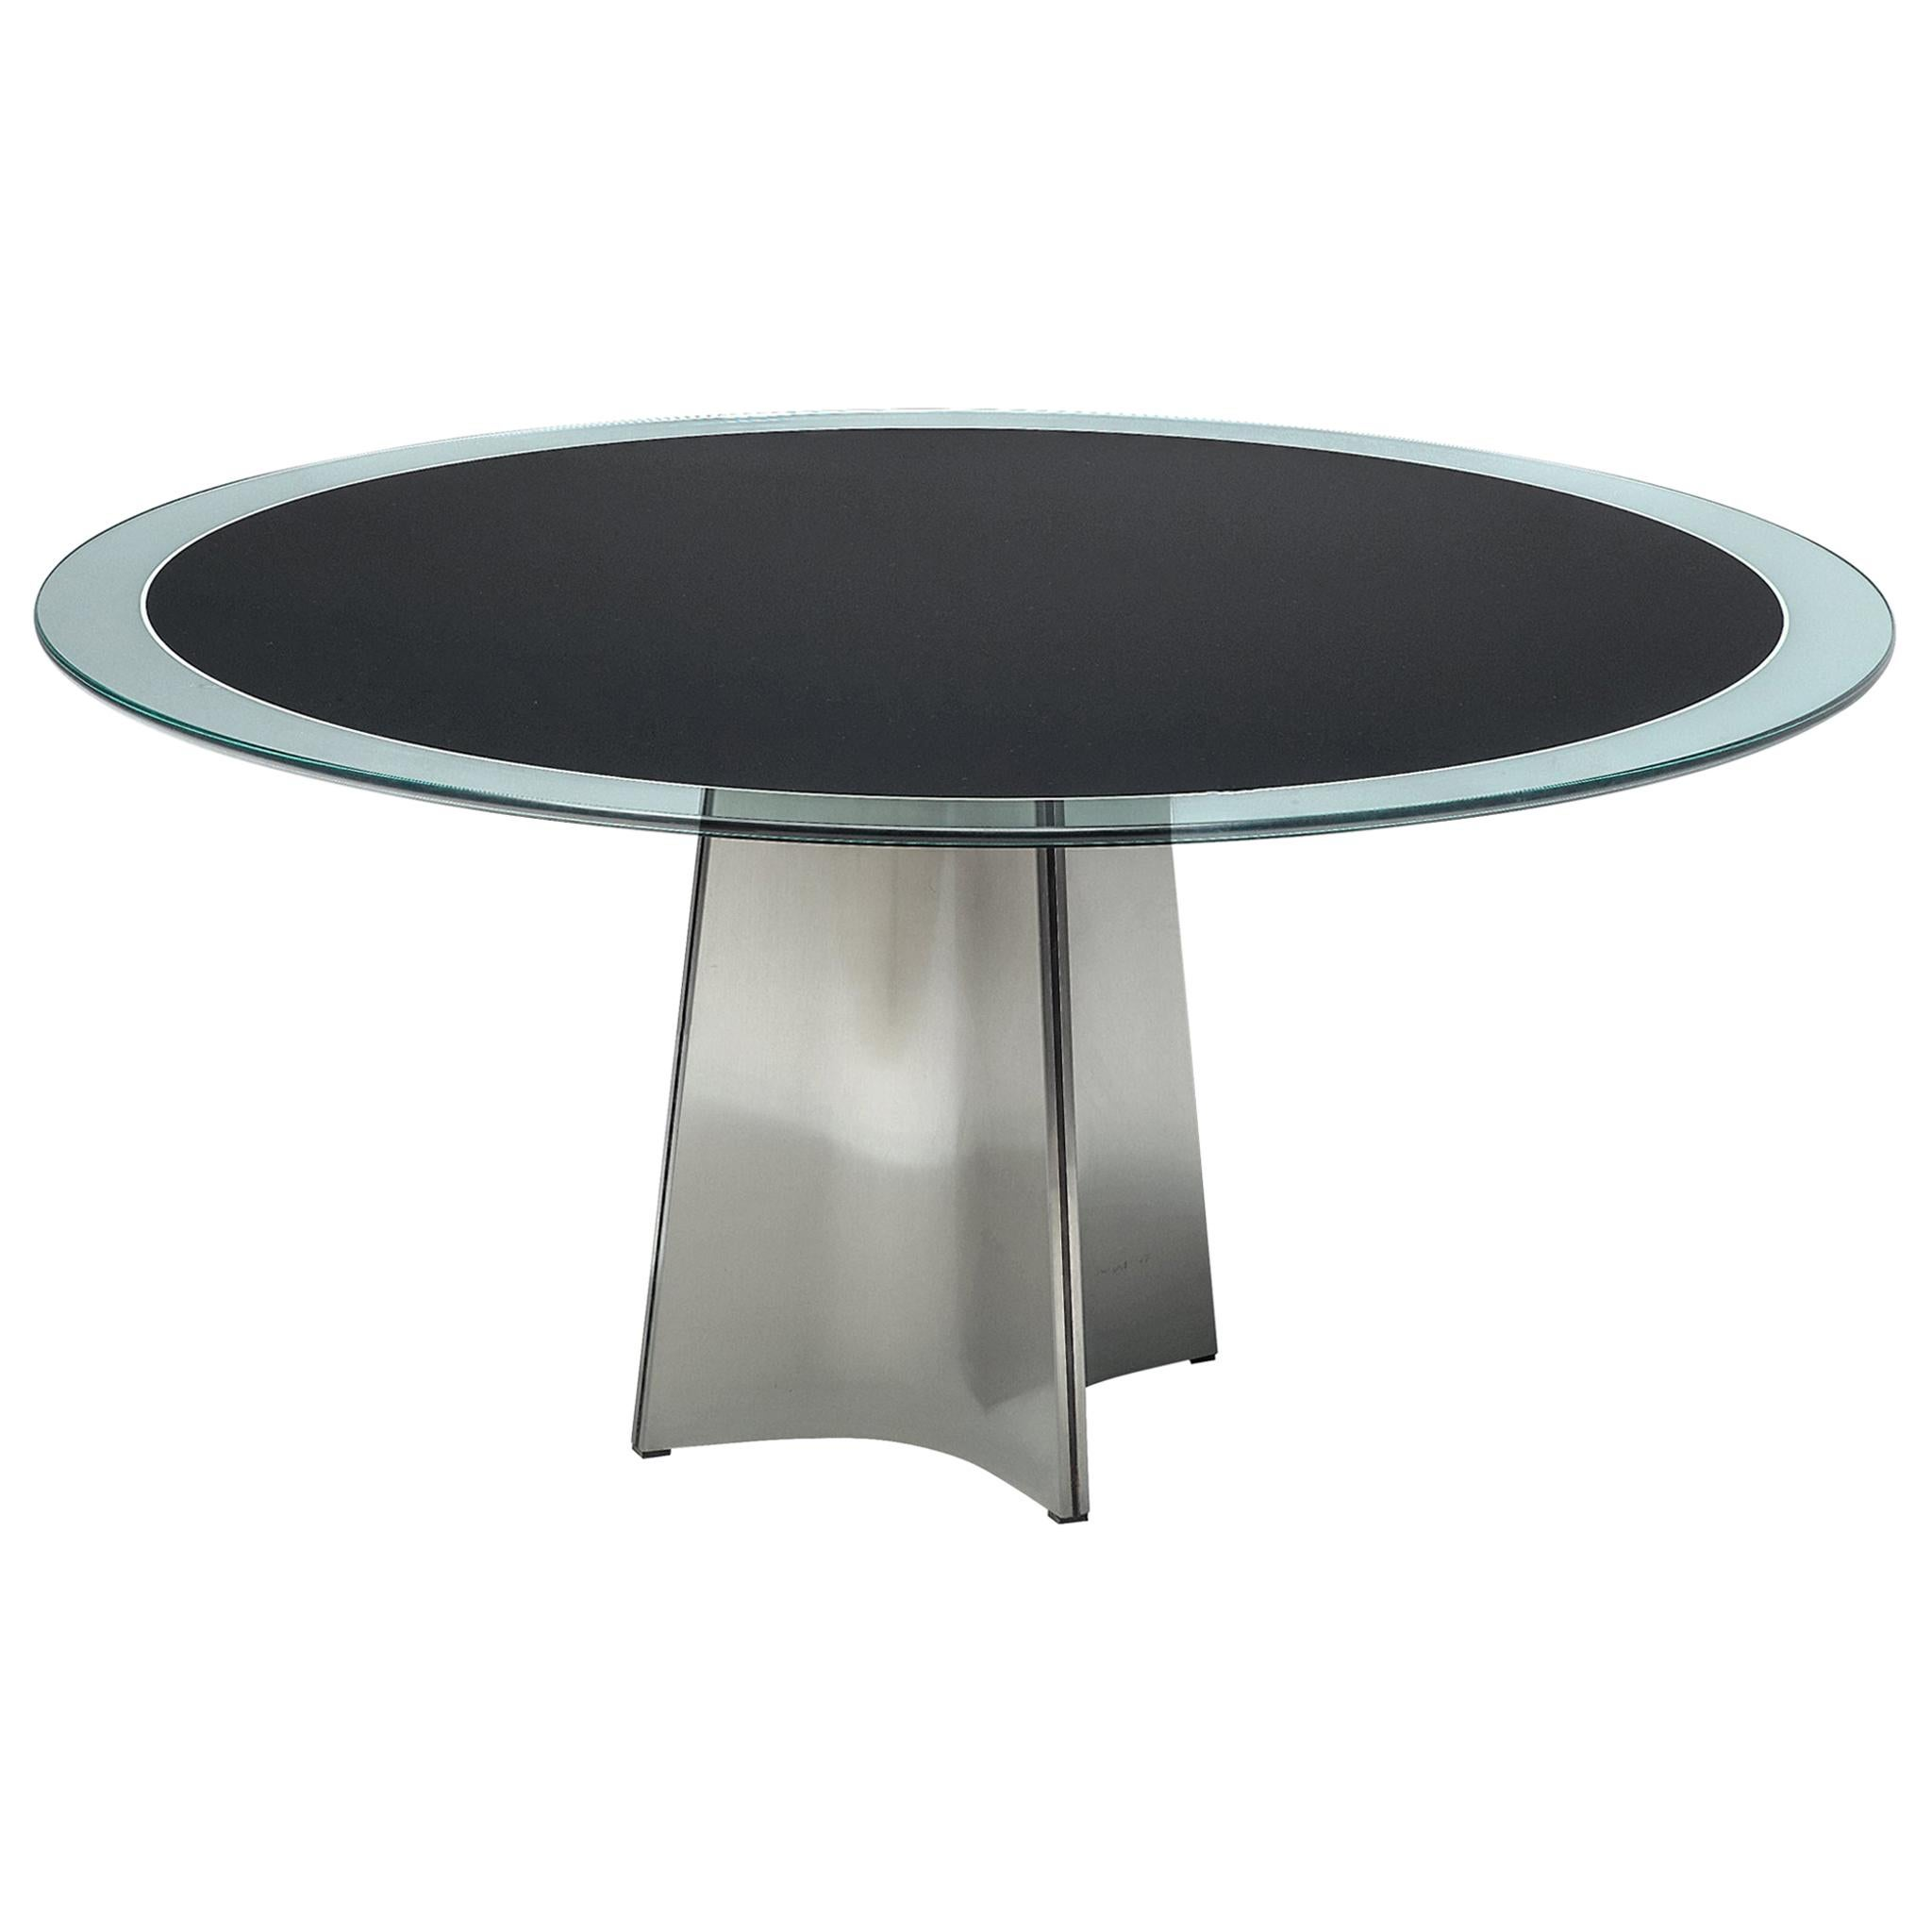 Luigi Saccardo Dining Table in Metal and Glass